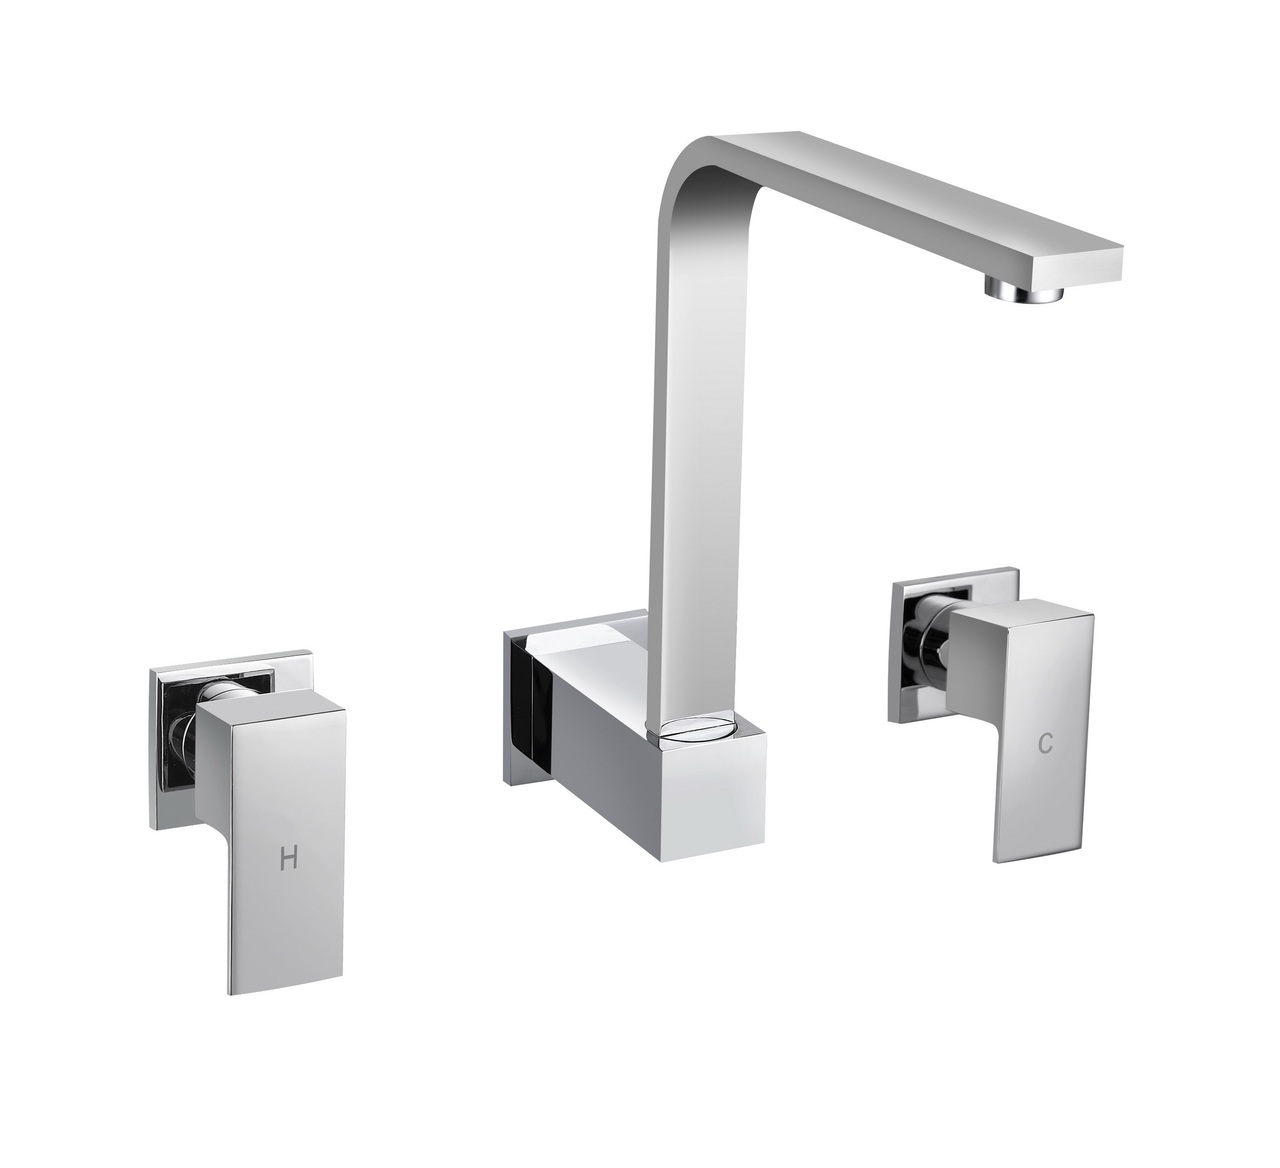 Chrome square wall taps with swivel spout